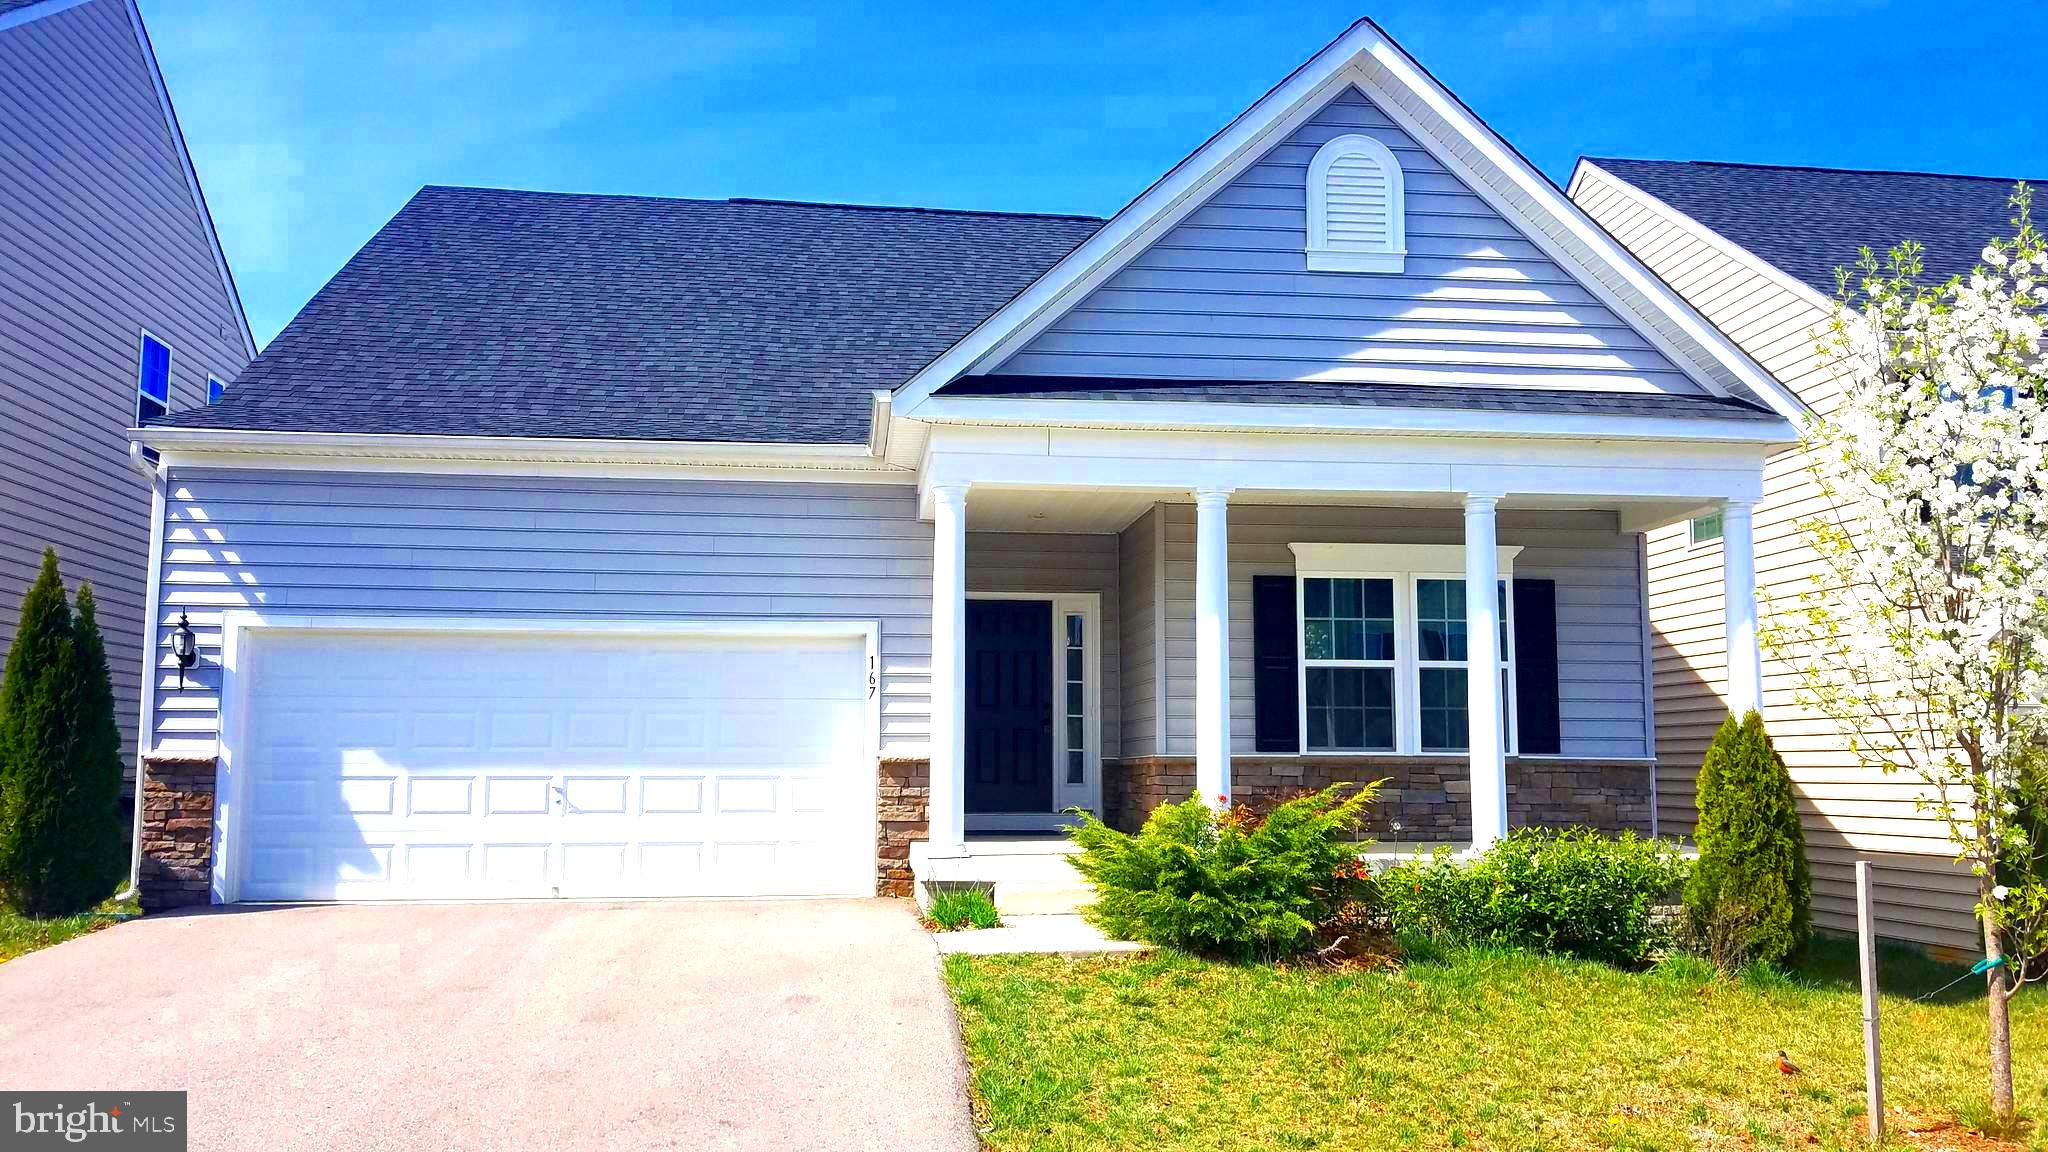 167 TOLLERTON TRAIL, FALLING WATERS, WV 25419